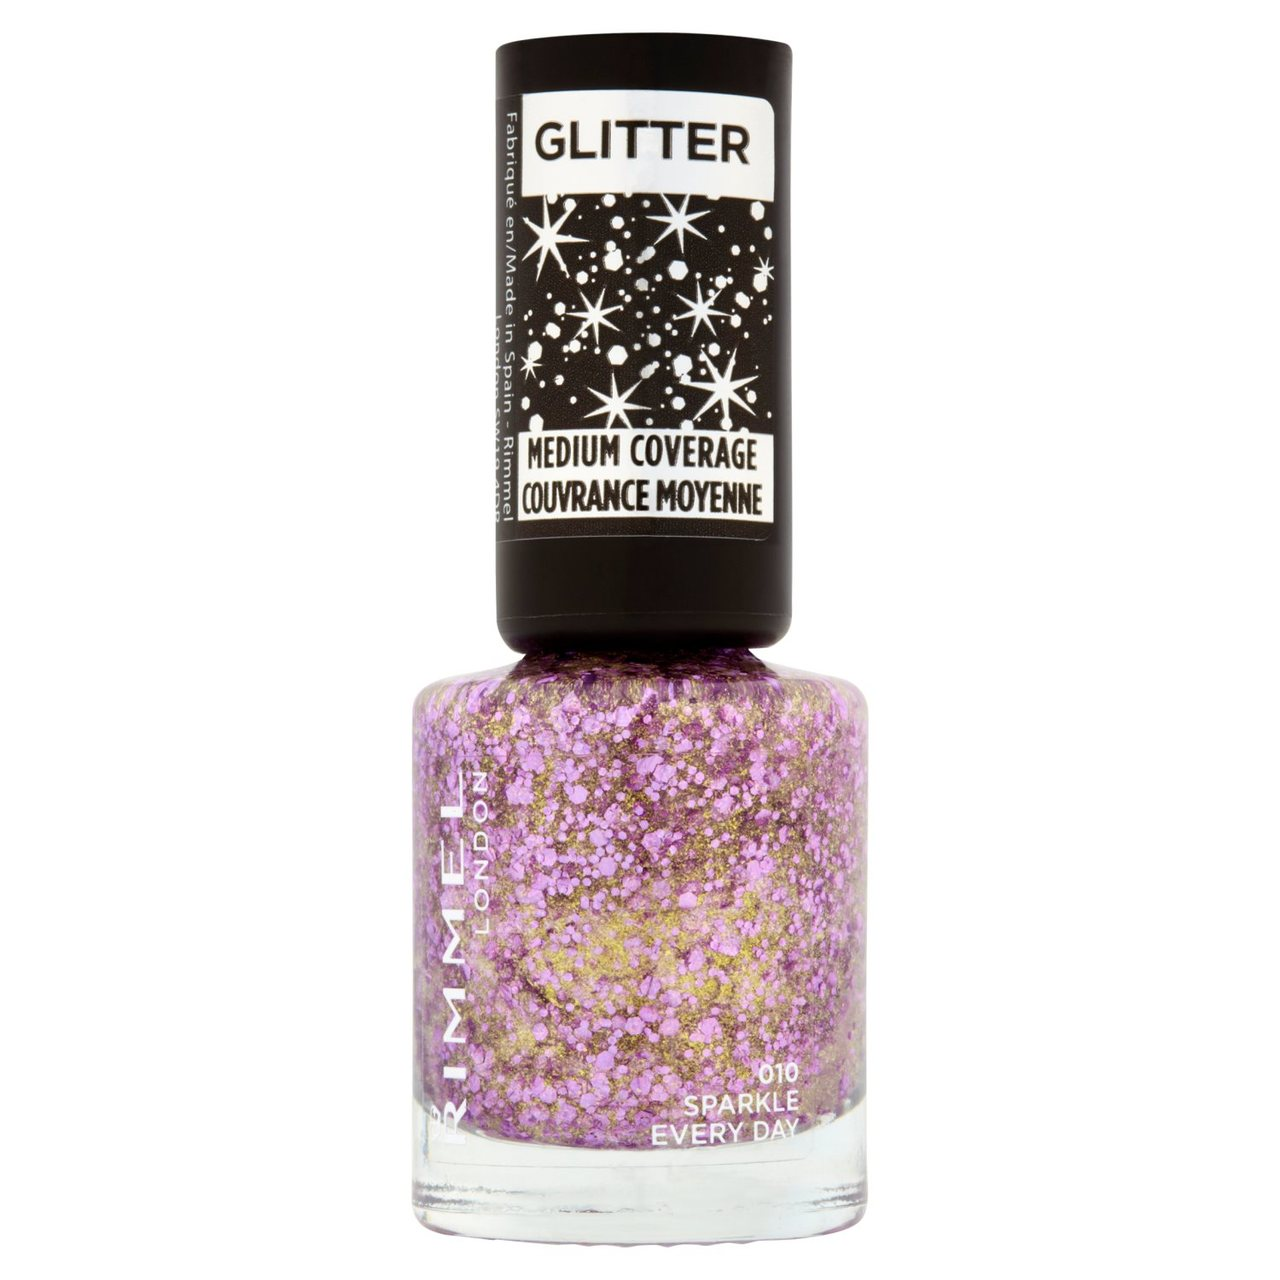 An image of Rimmel Glitter Medium Coverage Top Coat, Sparkle Every Day, 8ml